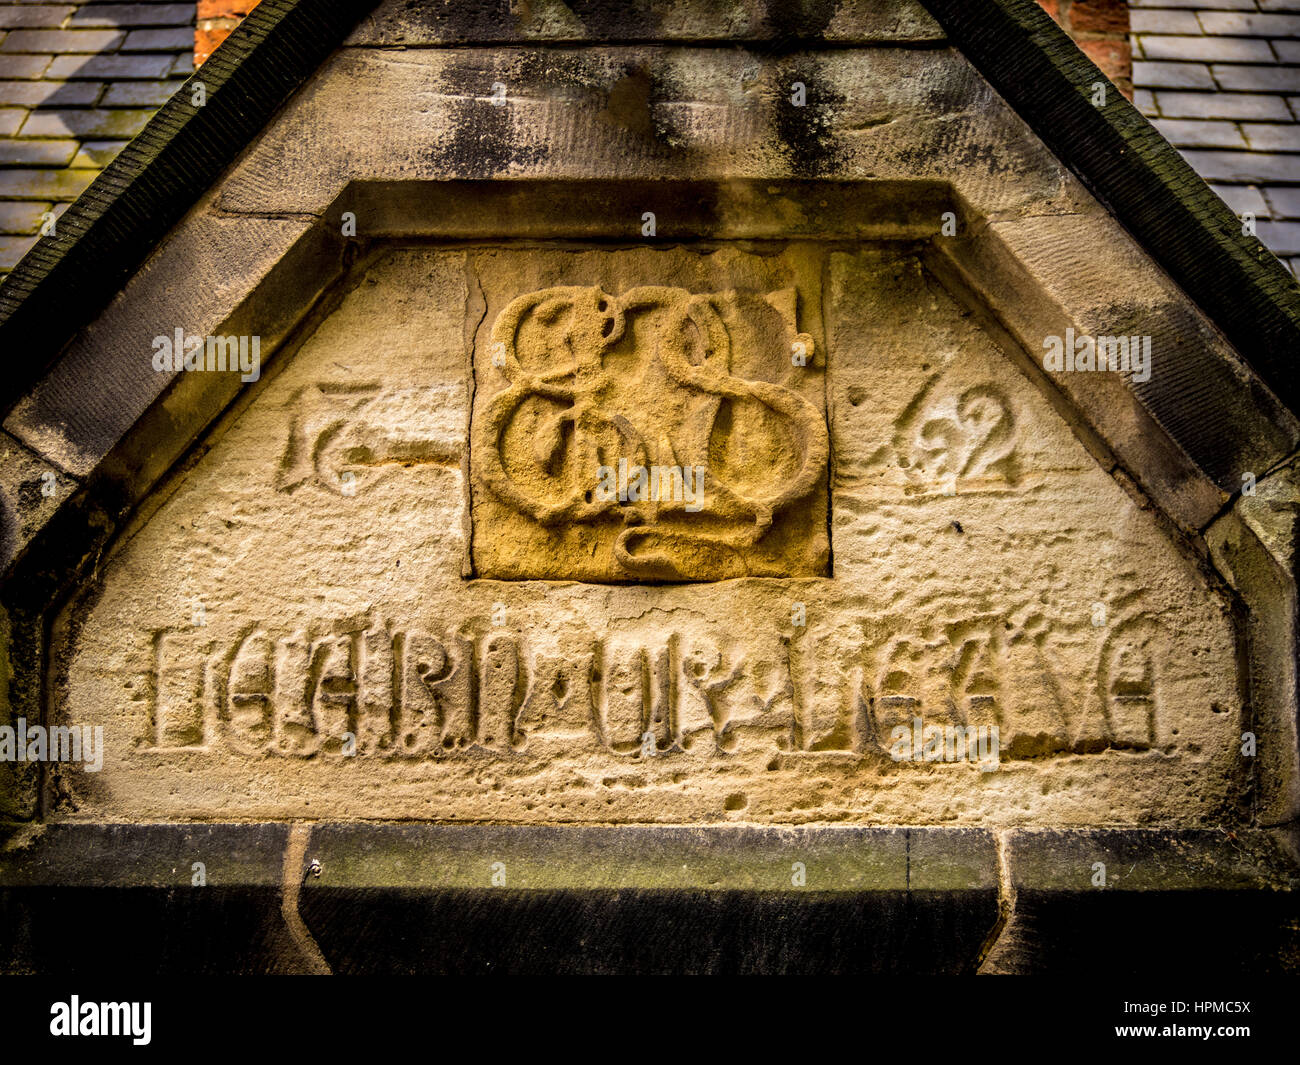 Architectural detail in brickwork on Library building, Easingwold, Yorkshire, UK. - Stock Image